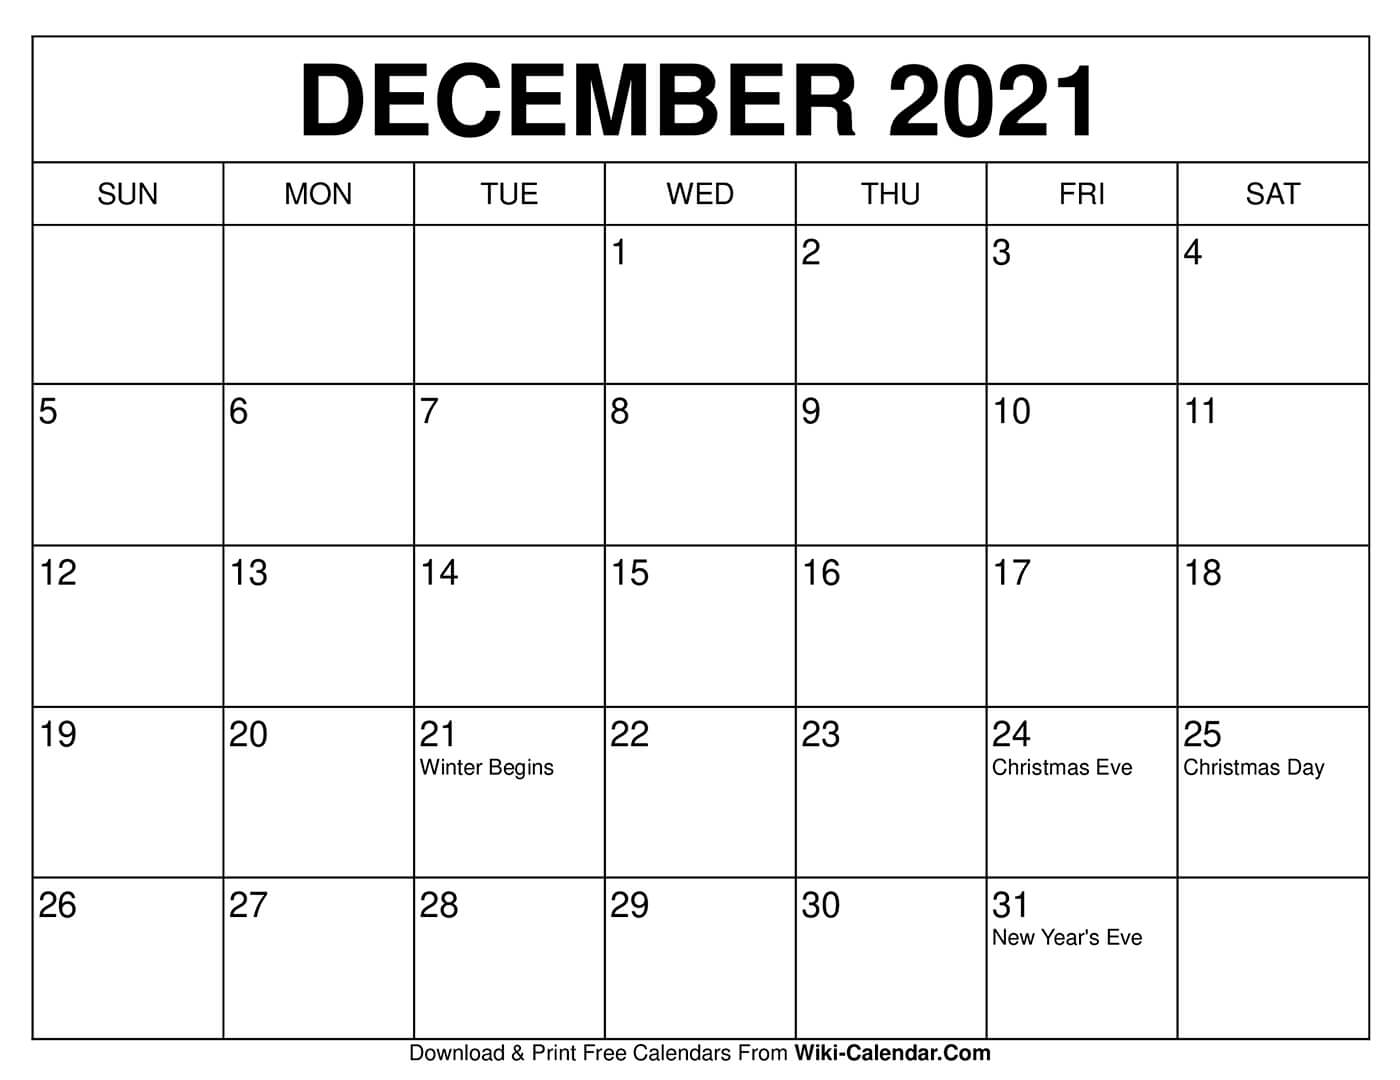 Catch 2021 December Caemdar Tp Rint For No Download With Pictures